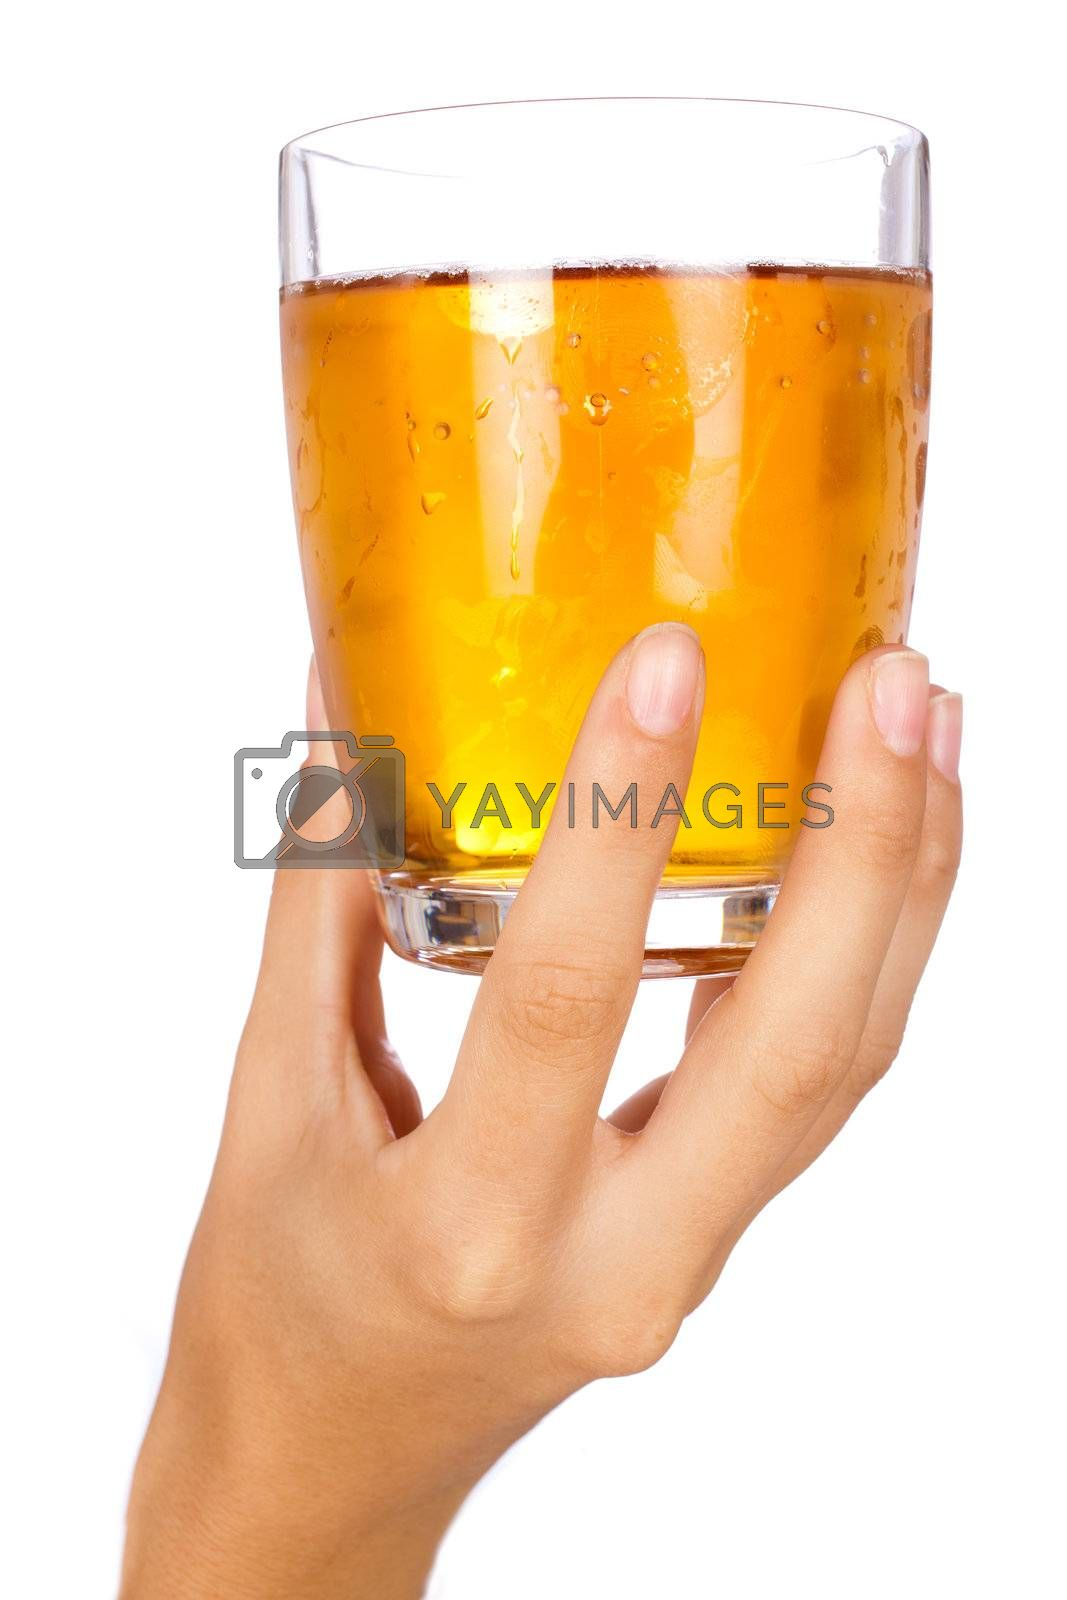 Holding a glass of champagne isolated over white background.